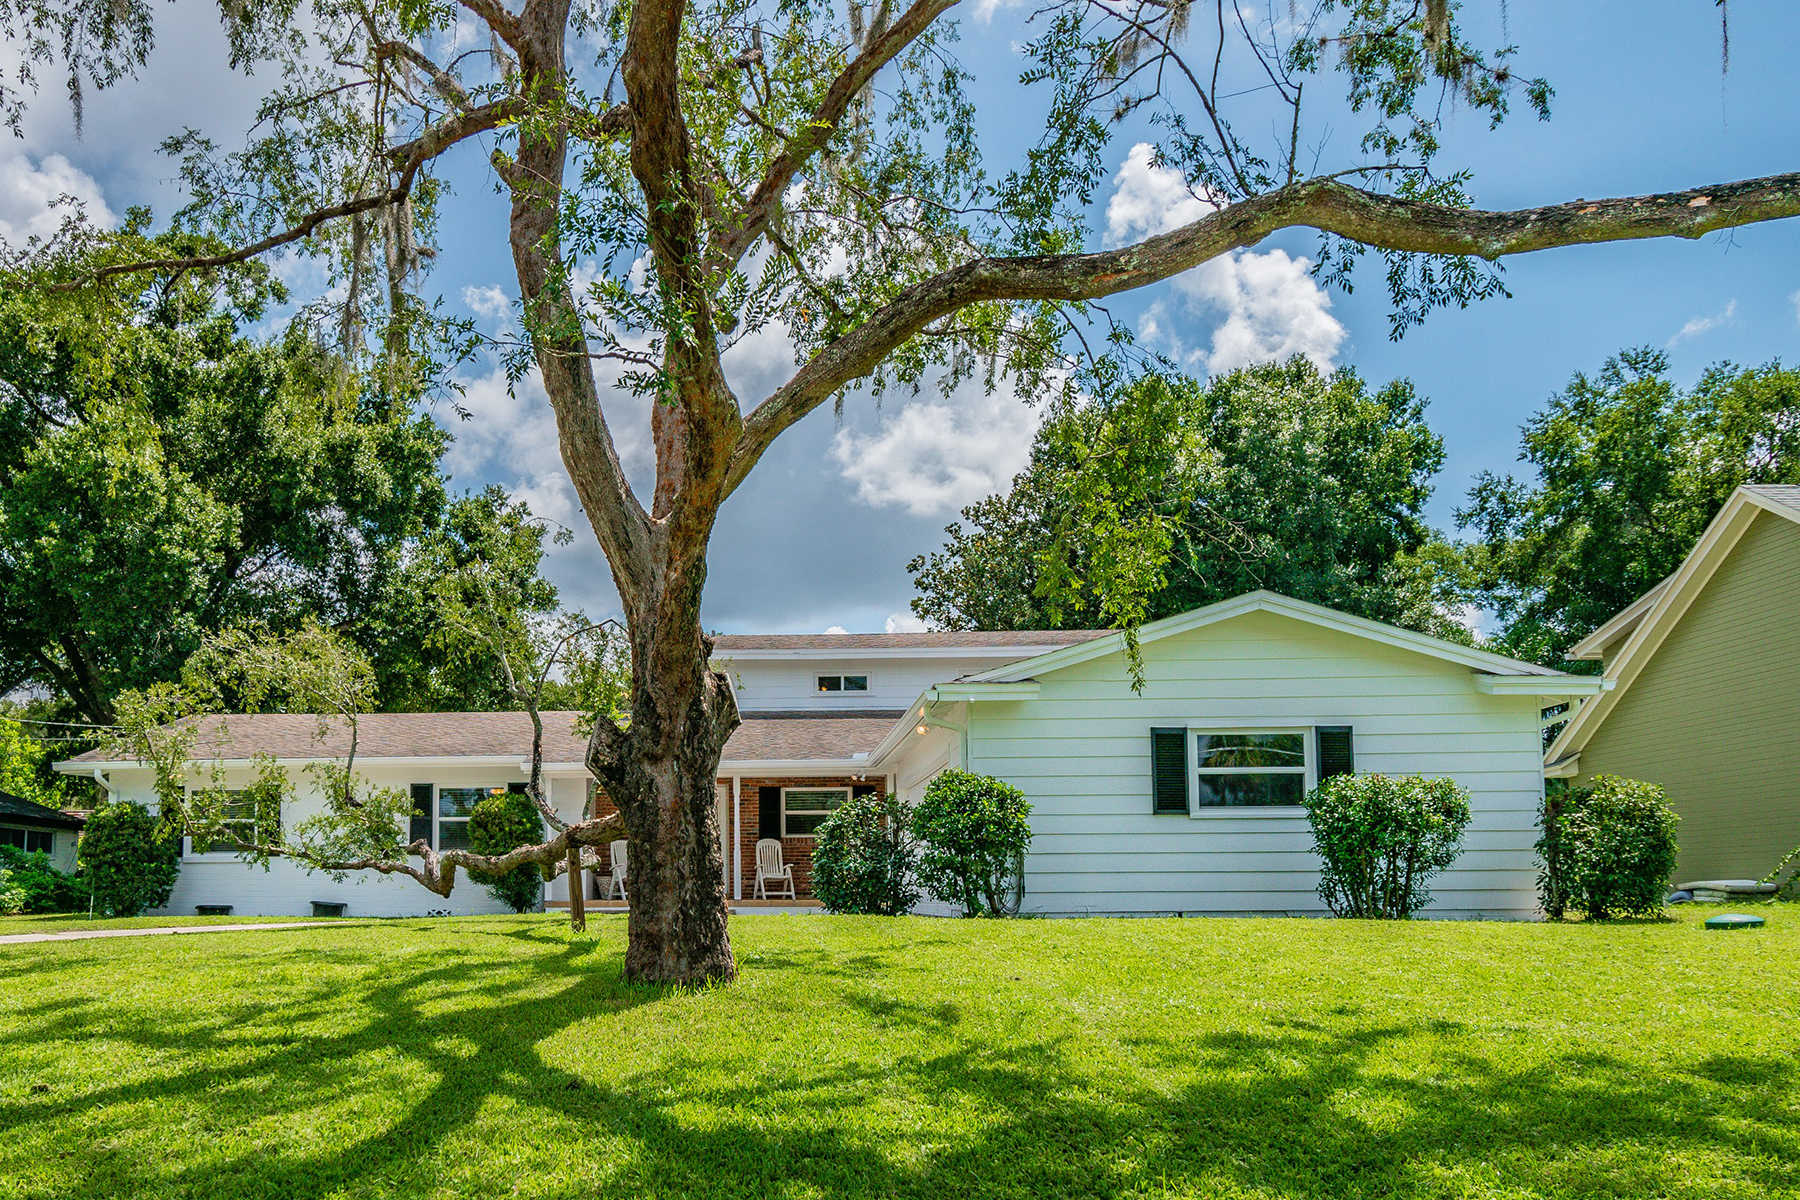 Single Family Homes for Active at MAITLAND 310 E Trotters Dr Maitland, Florida 32751 United States